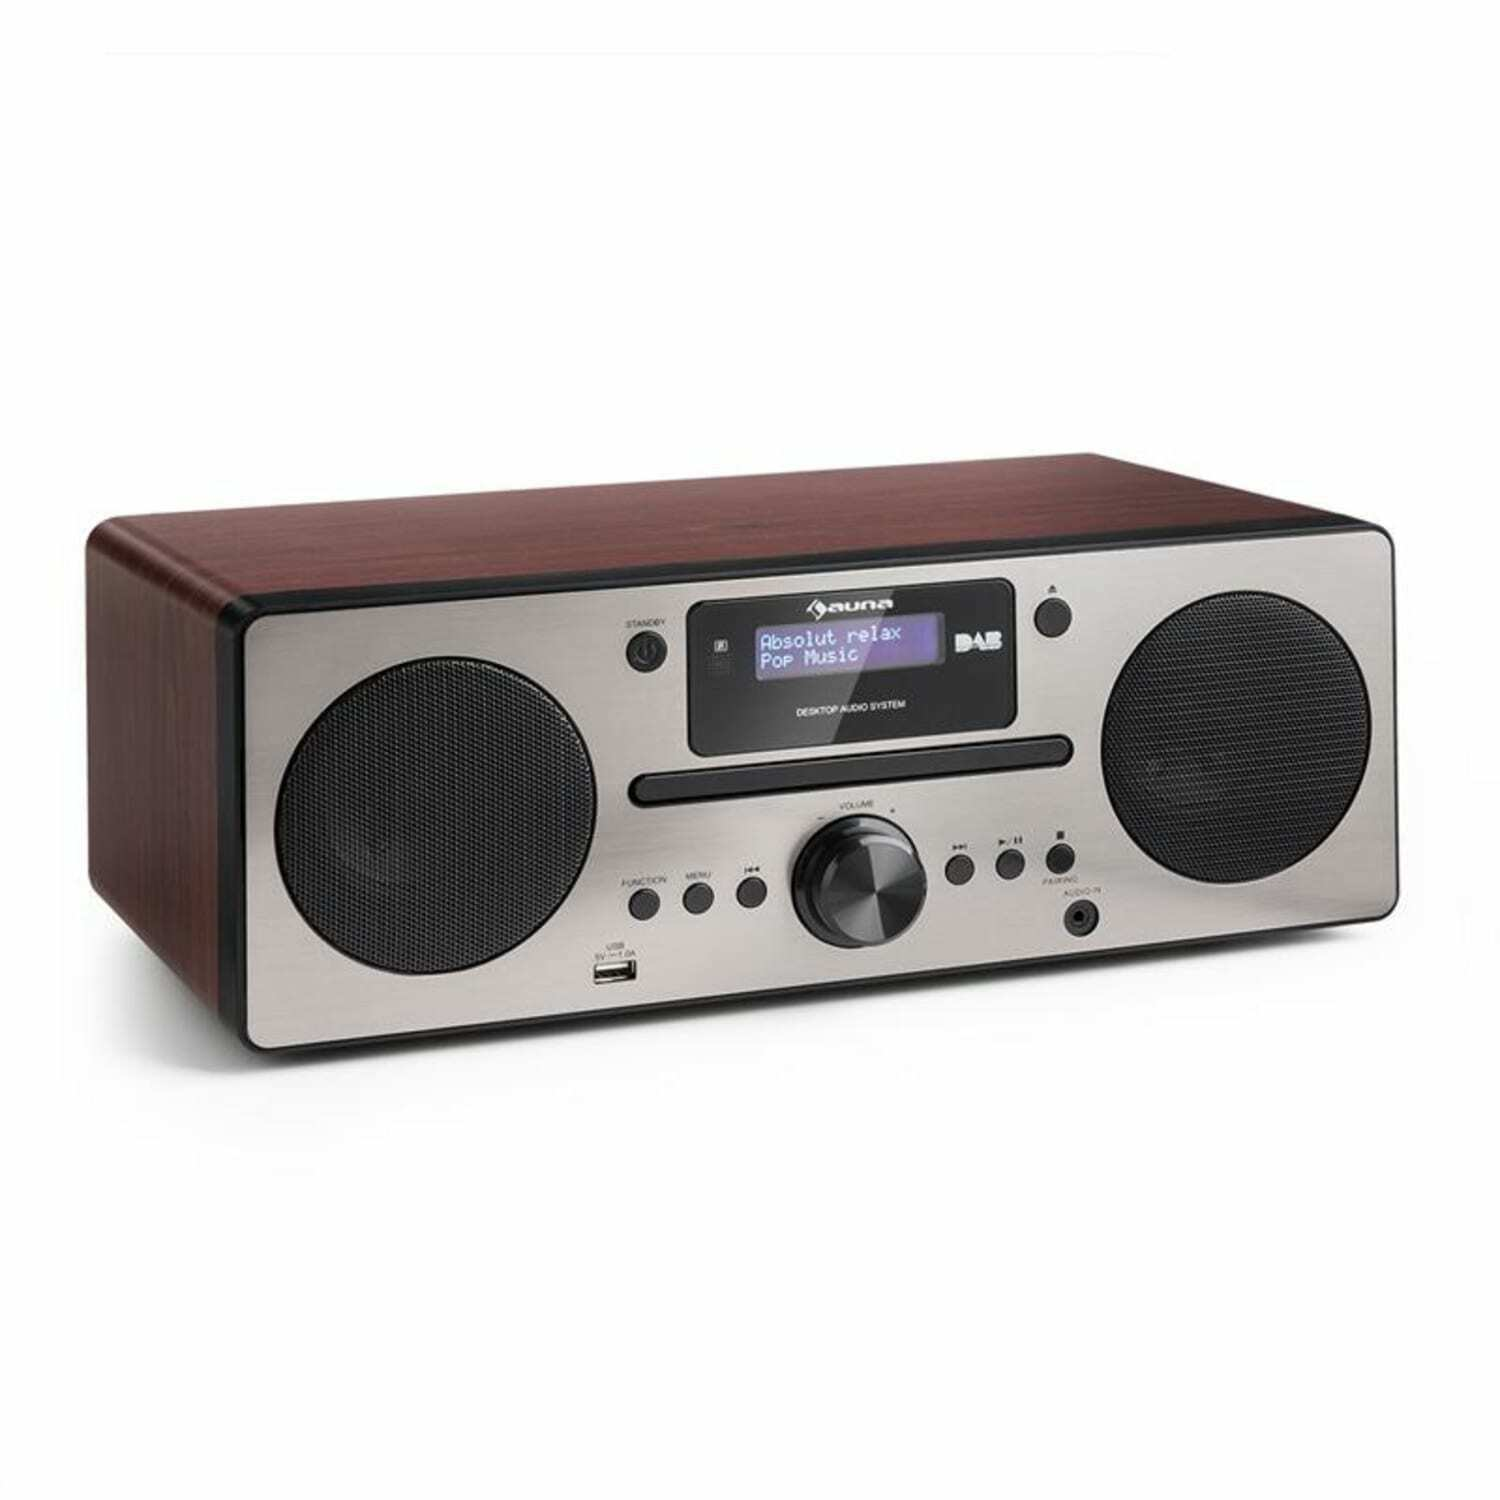 micro stereoanlage dab digitalradio usb cd player ukw. Black Bedroom Furniture Sets. Home Design Ideas